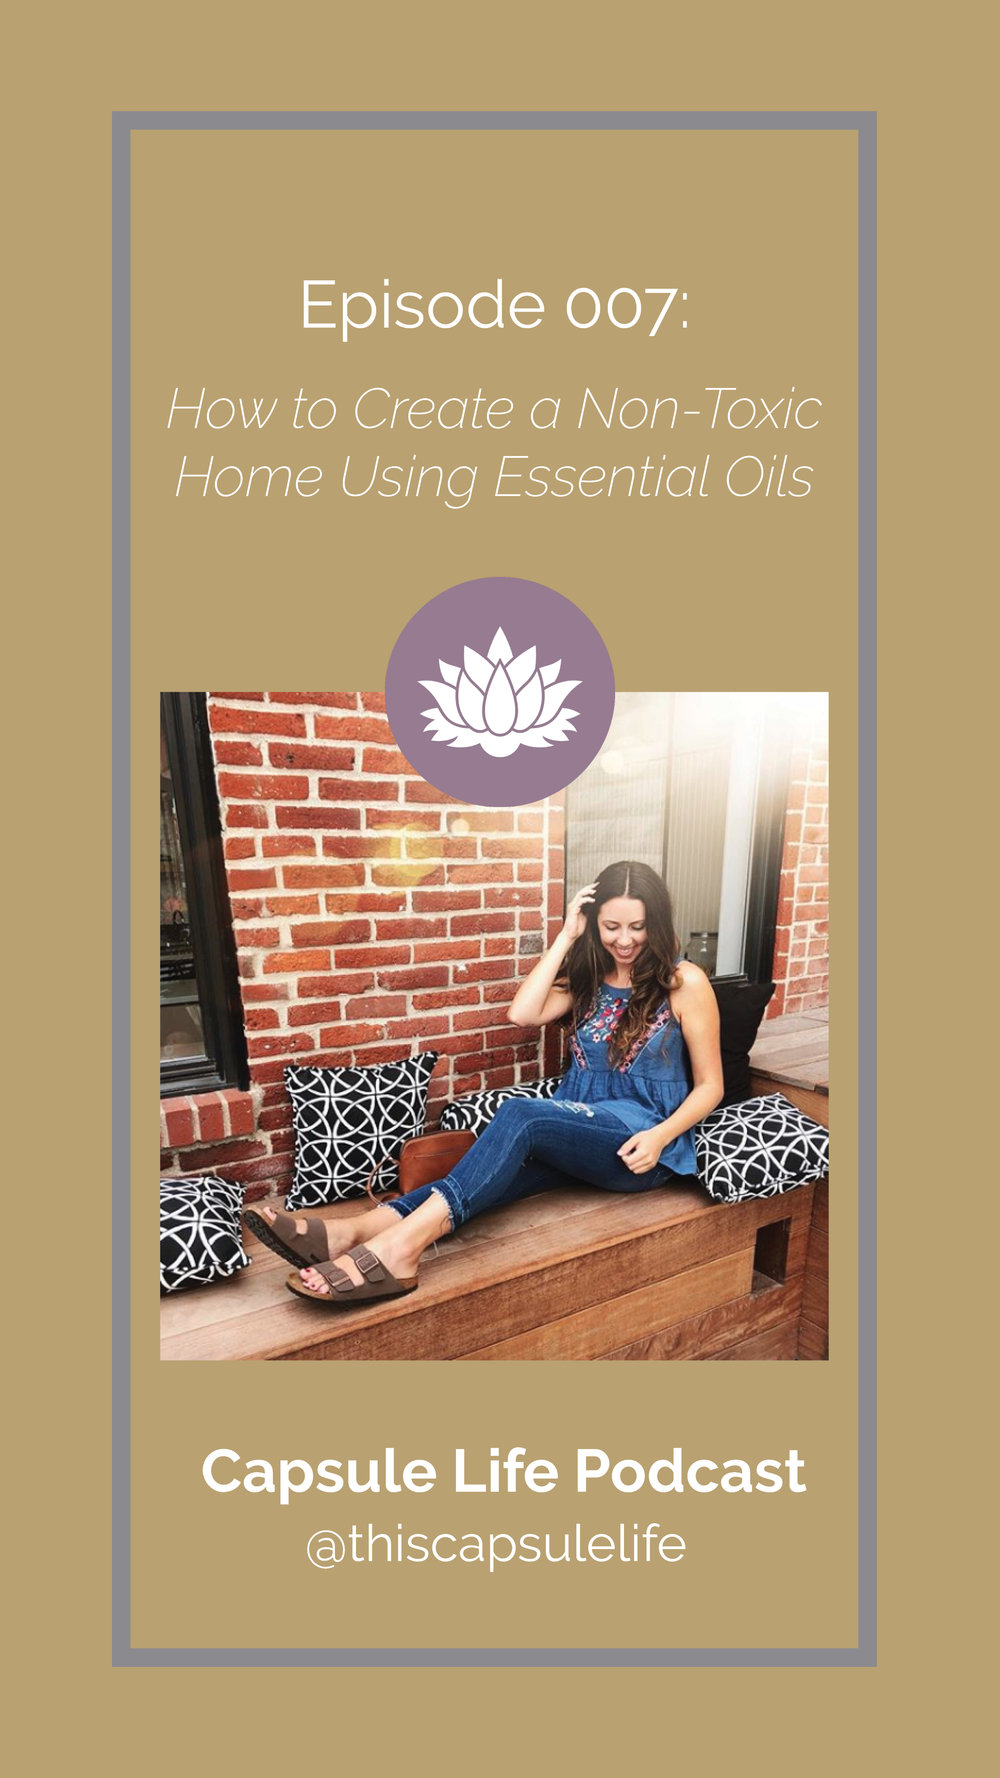 How to create a non-toxic home using essential oils with special guest Janelle Settle